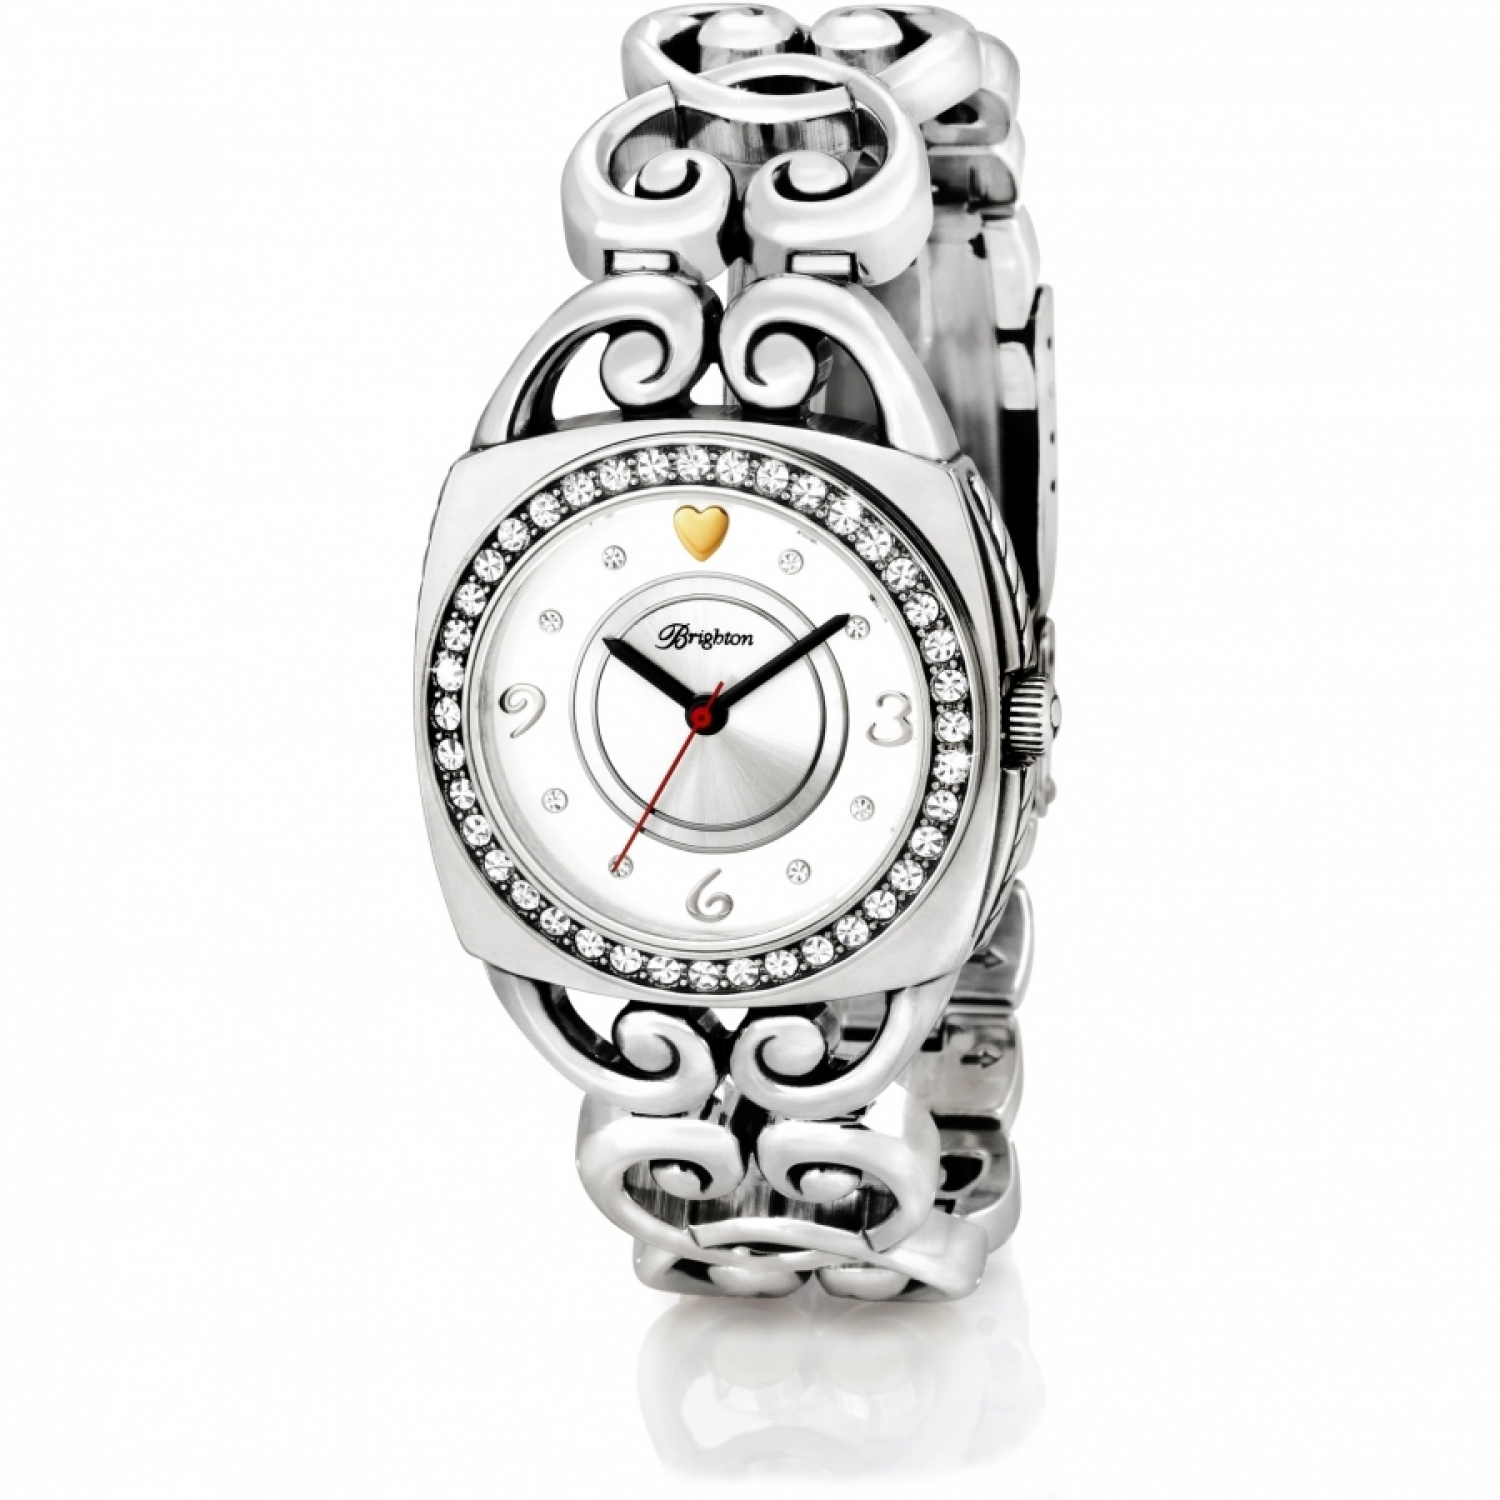 Balboa Bayfront Watch  sc 1 st  Brighton Collectibles & Fashion Watches for Women - Gold u0026 Silver Watches | Brighton ...